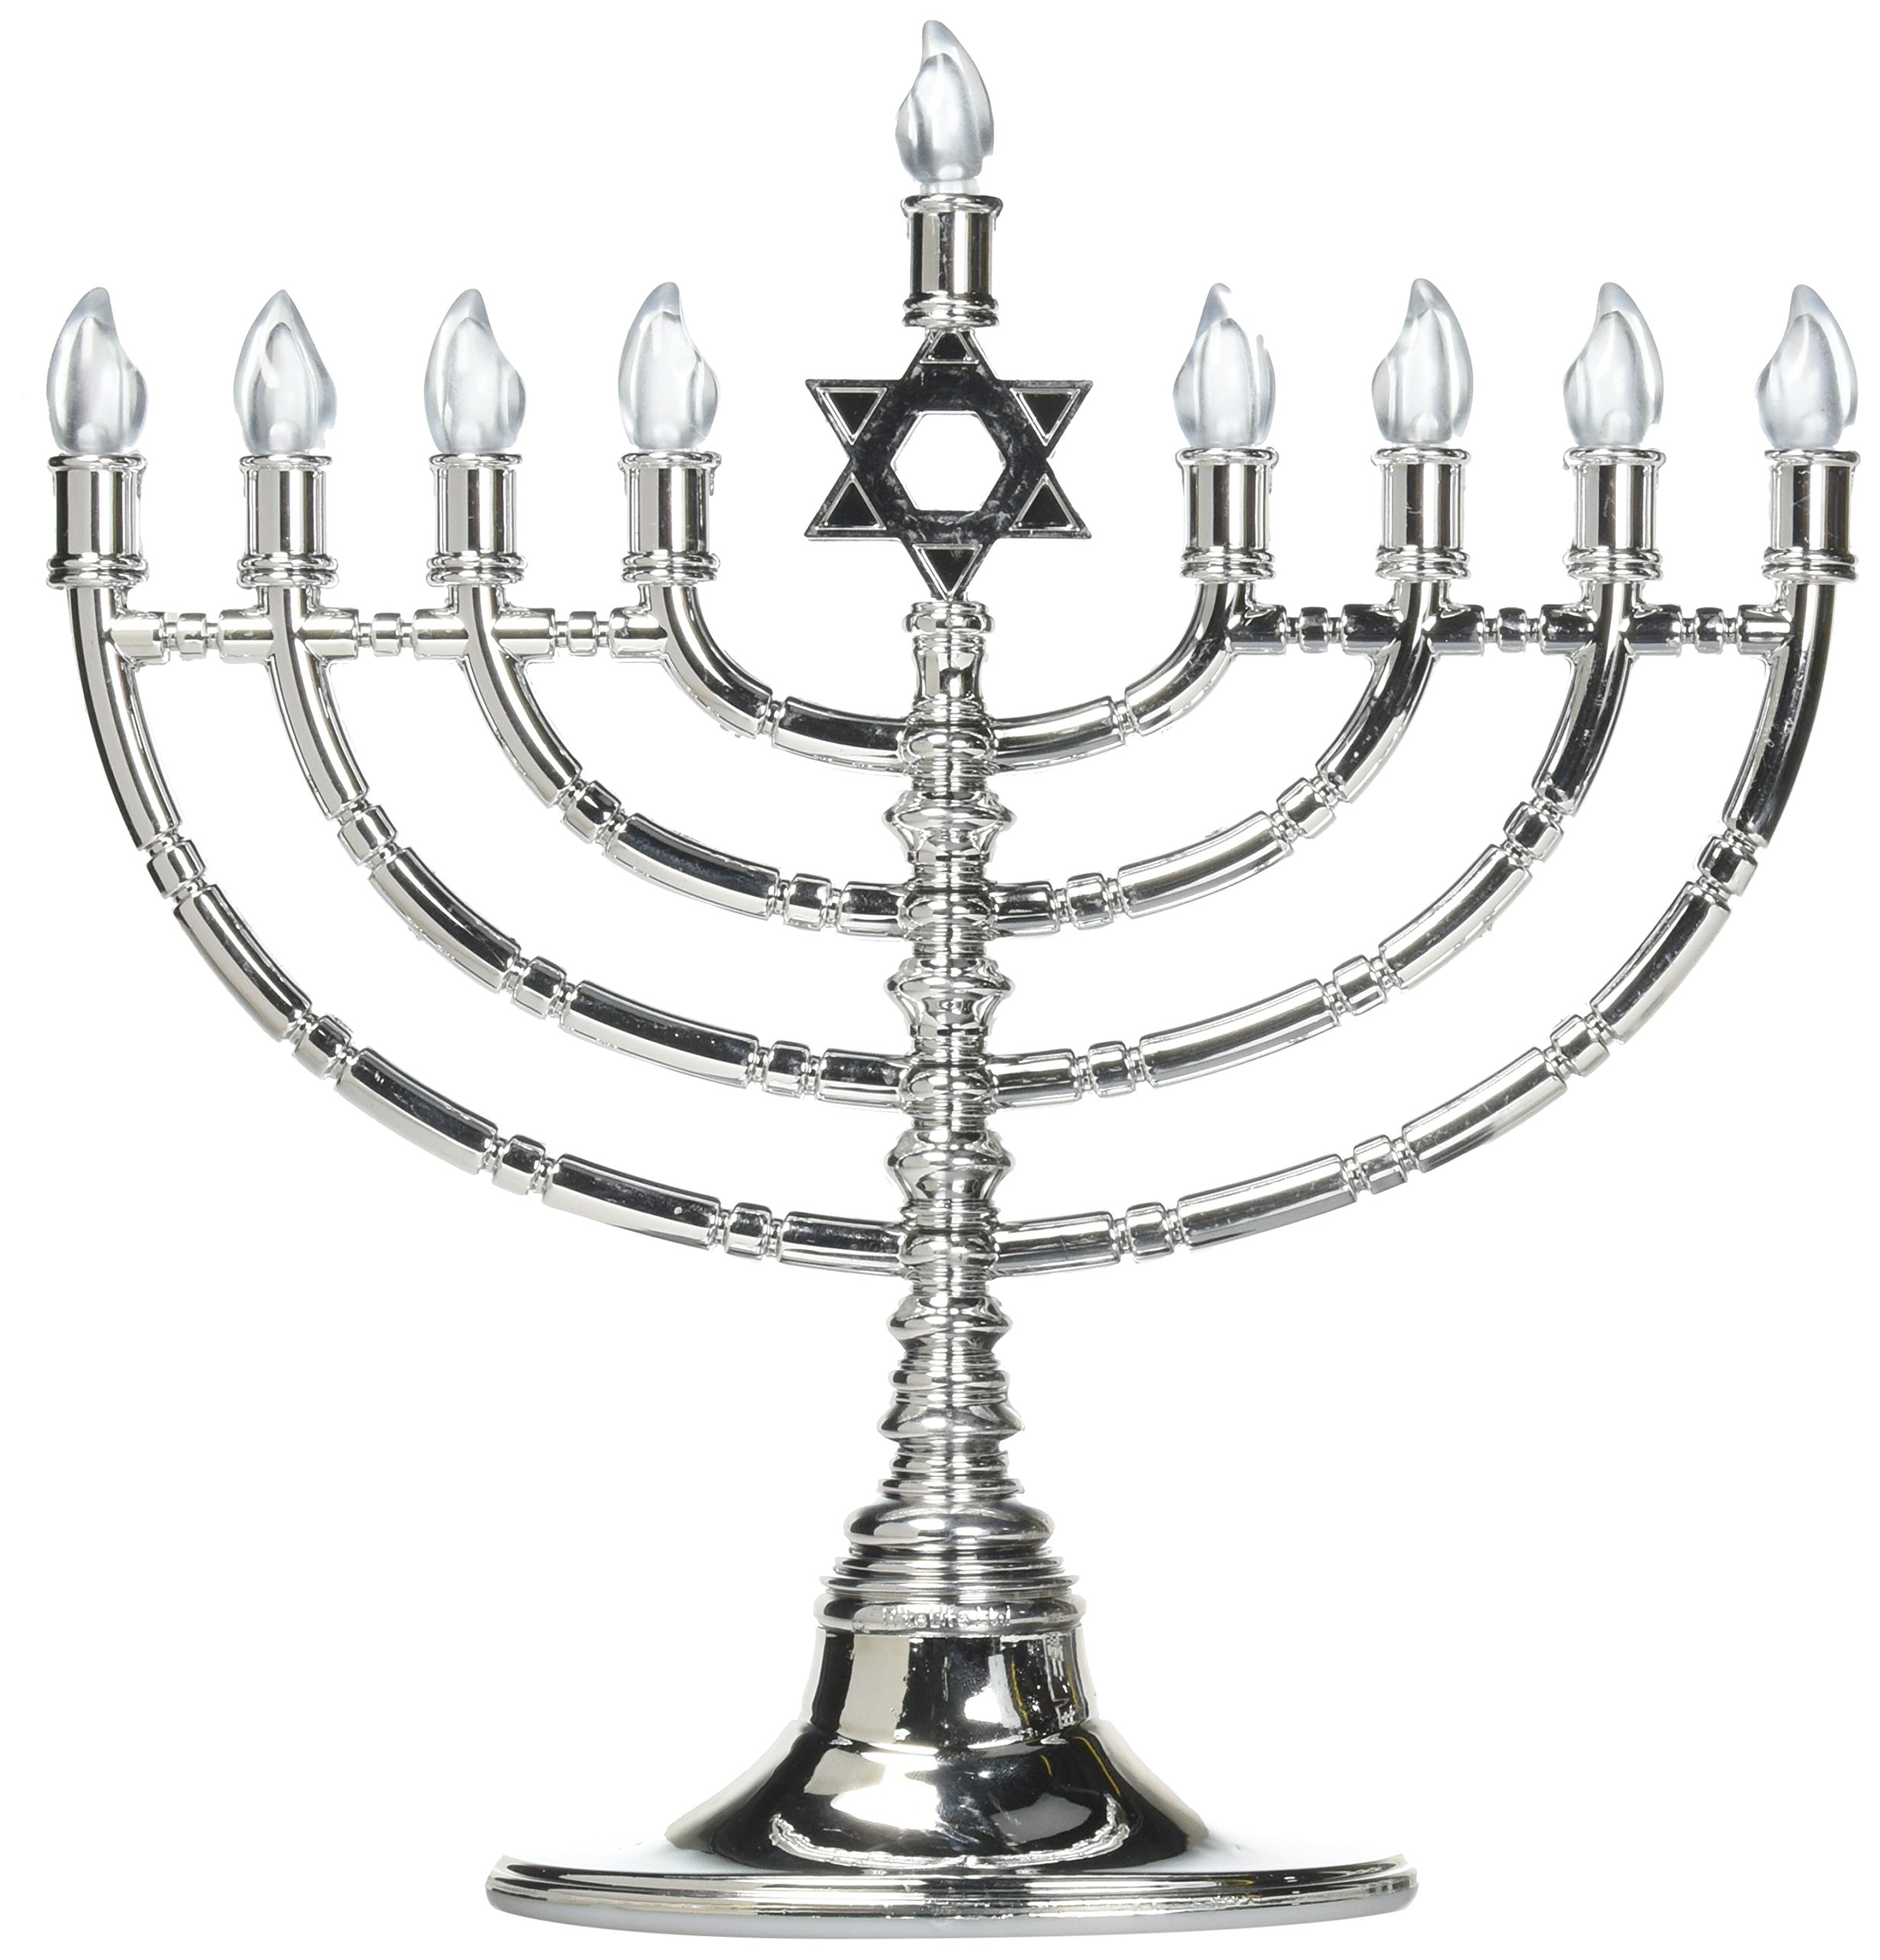 Rite Lite LTD JRN 210 Silvertone Low Voltage Led Menorah by Rite Lite